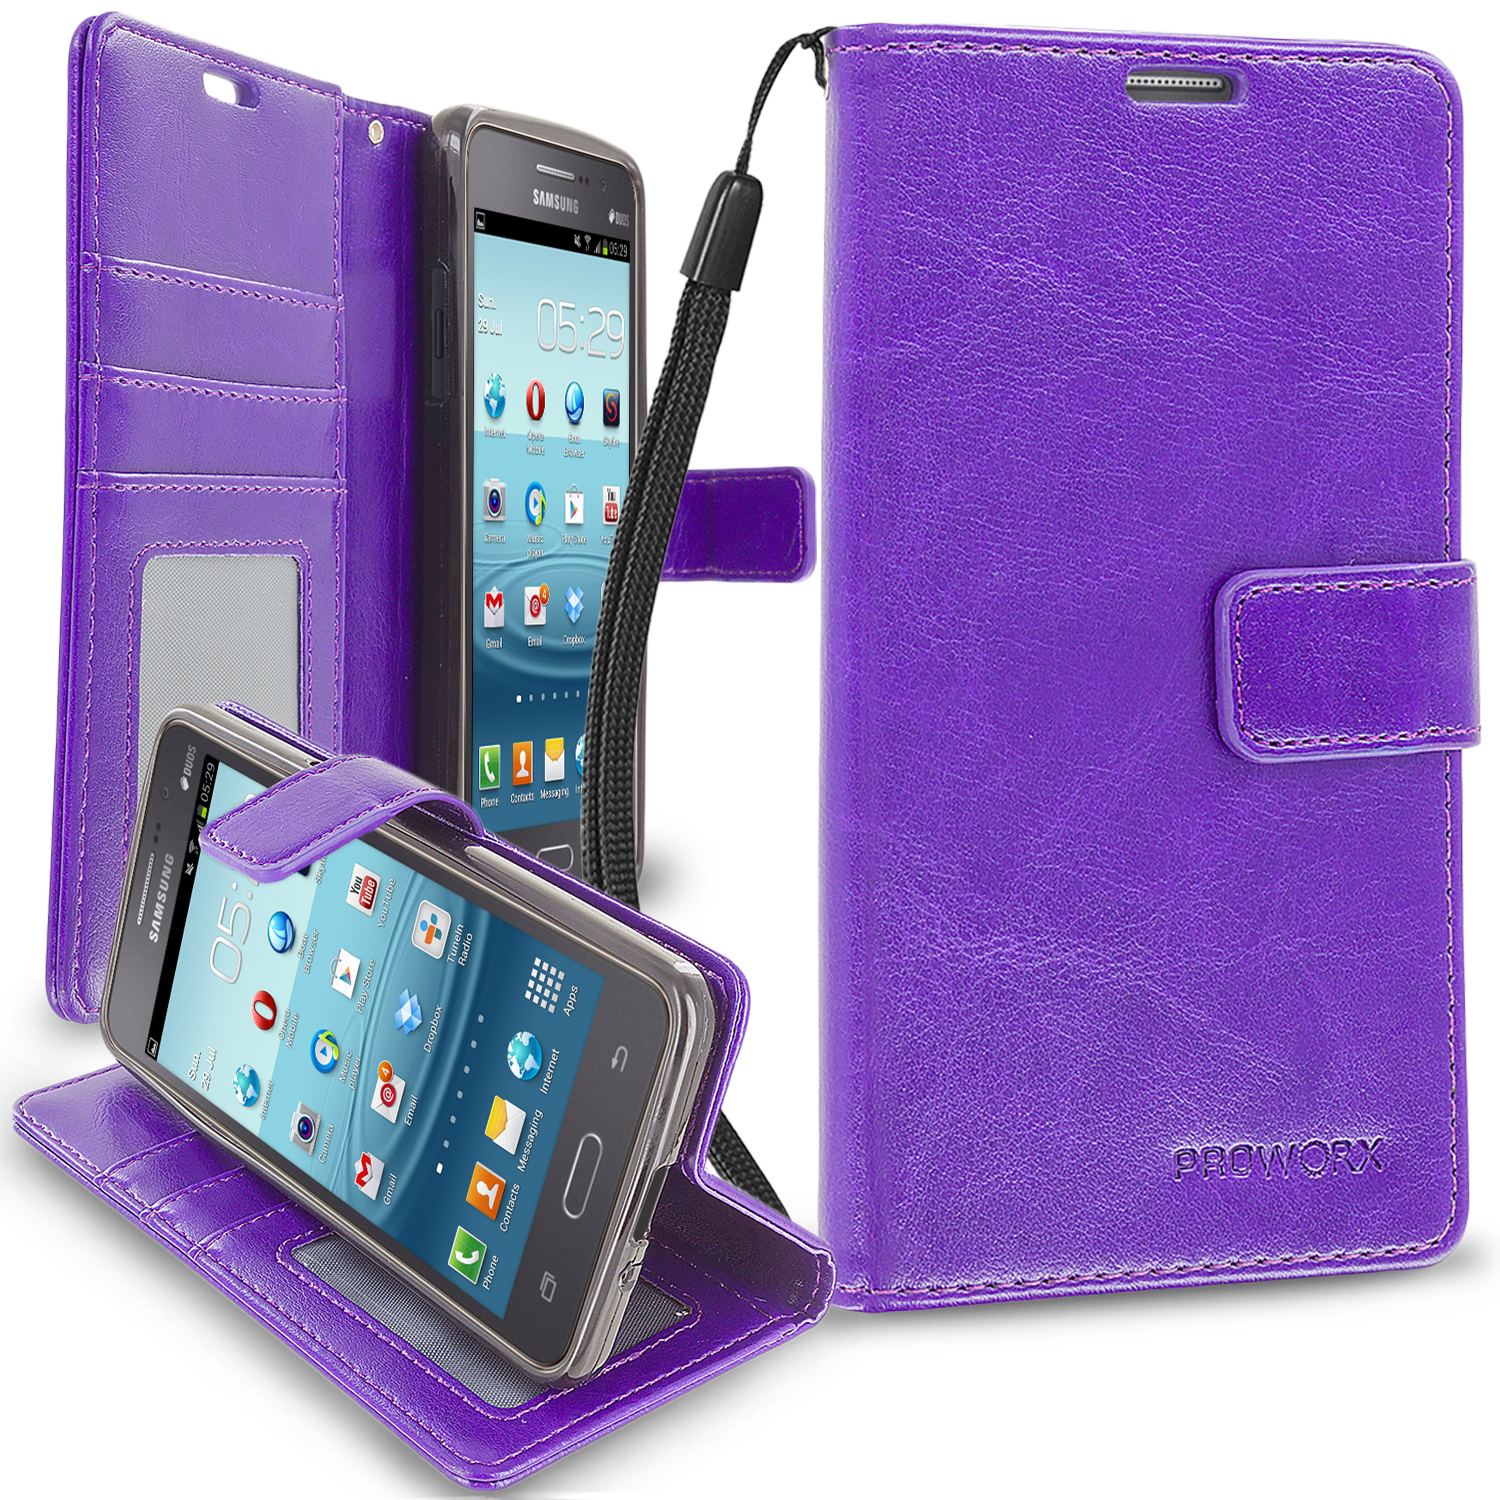 Samsung Galaxy Grand Prime LTE G530 Purple ProWorx Wallet Case Luxury PU Leather Case Cover With Card Slots & Stand